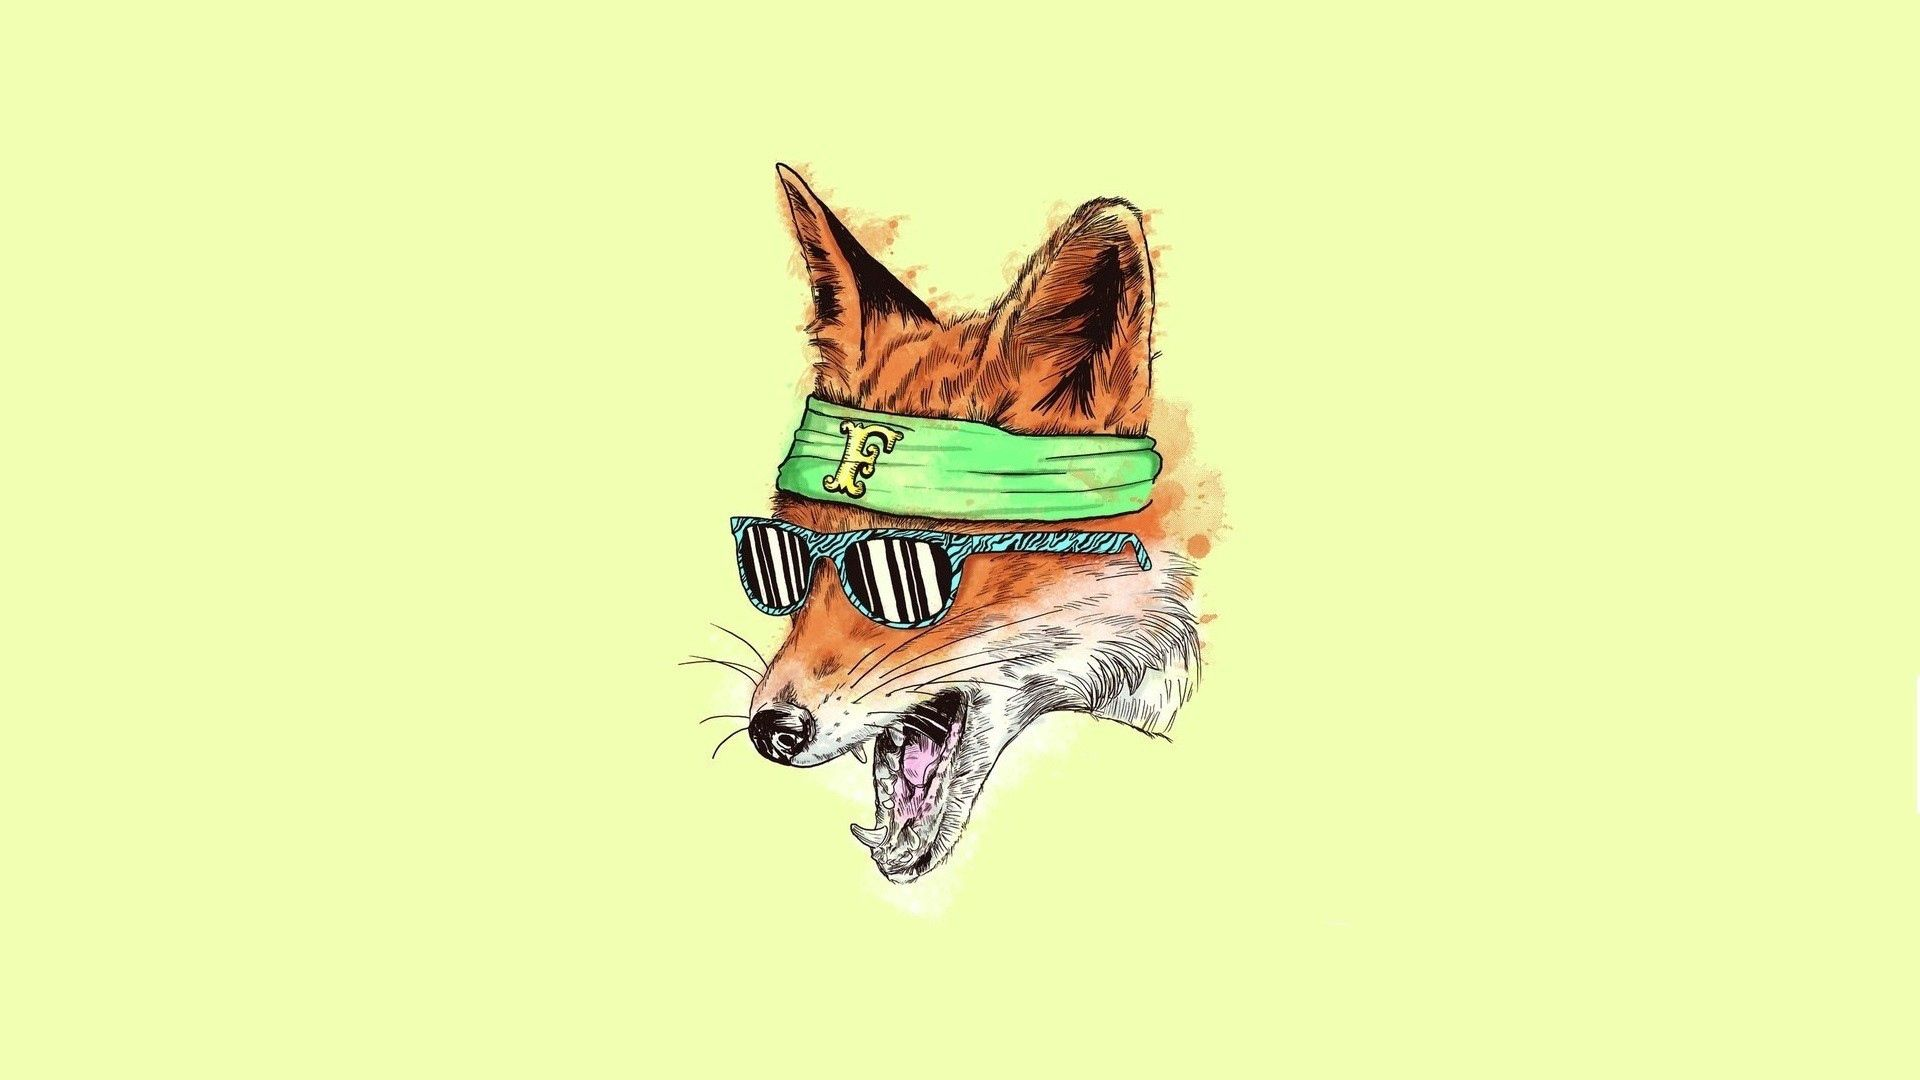 115722 download wallpaper Art, Fox, Bandage, Glasses, Spectacles, Picture, Drawing screensavers and pictures for free